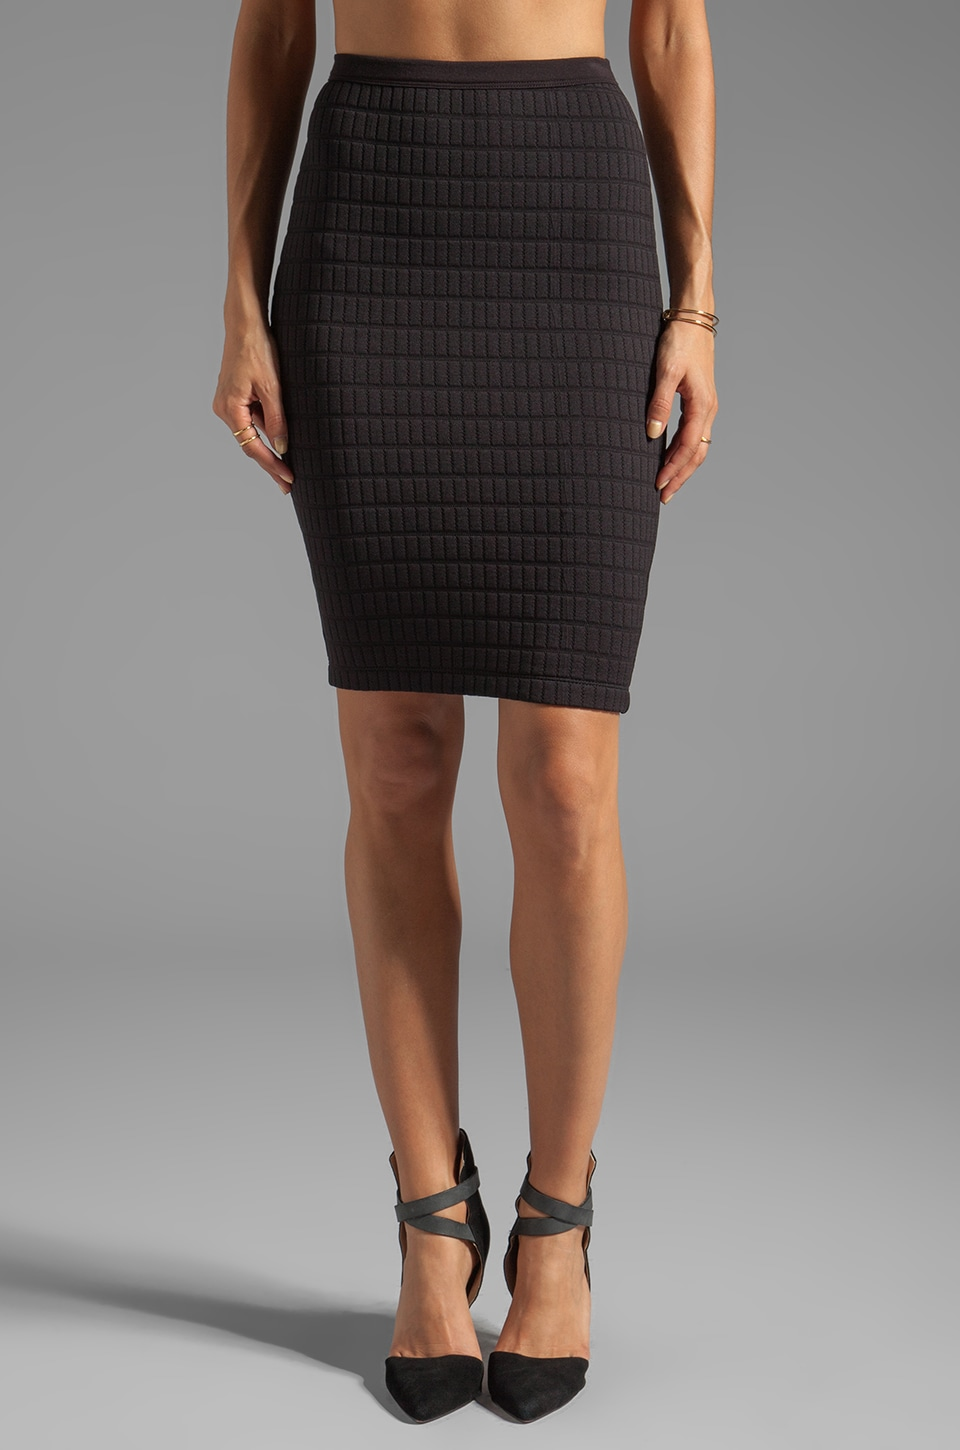 Bailey 44 Scanner Quilted Pencil Skirt in Black